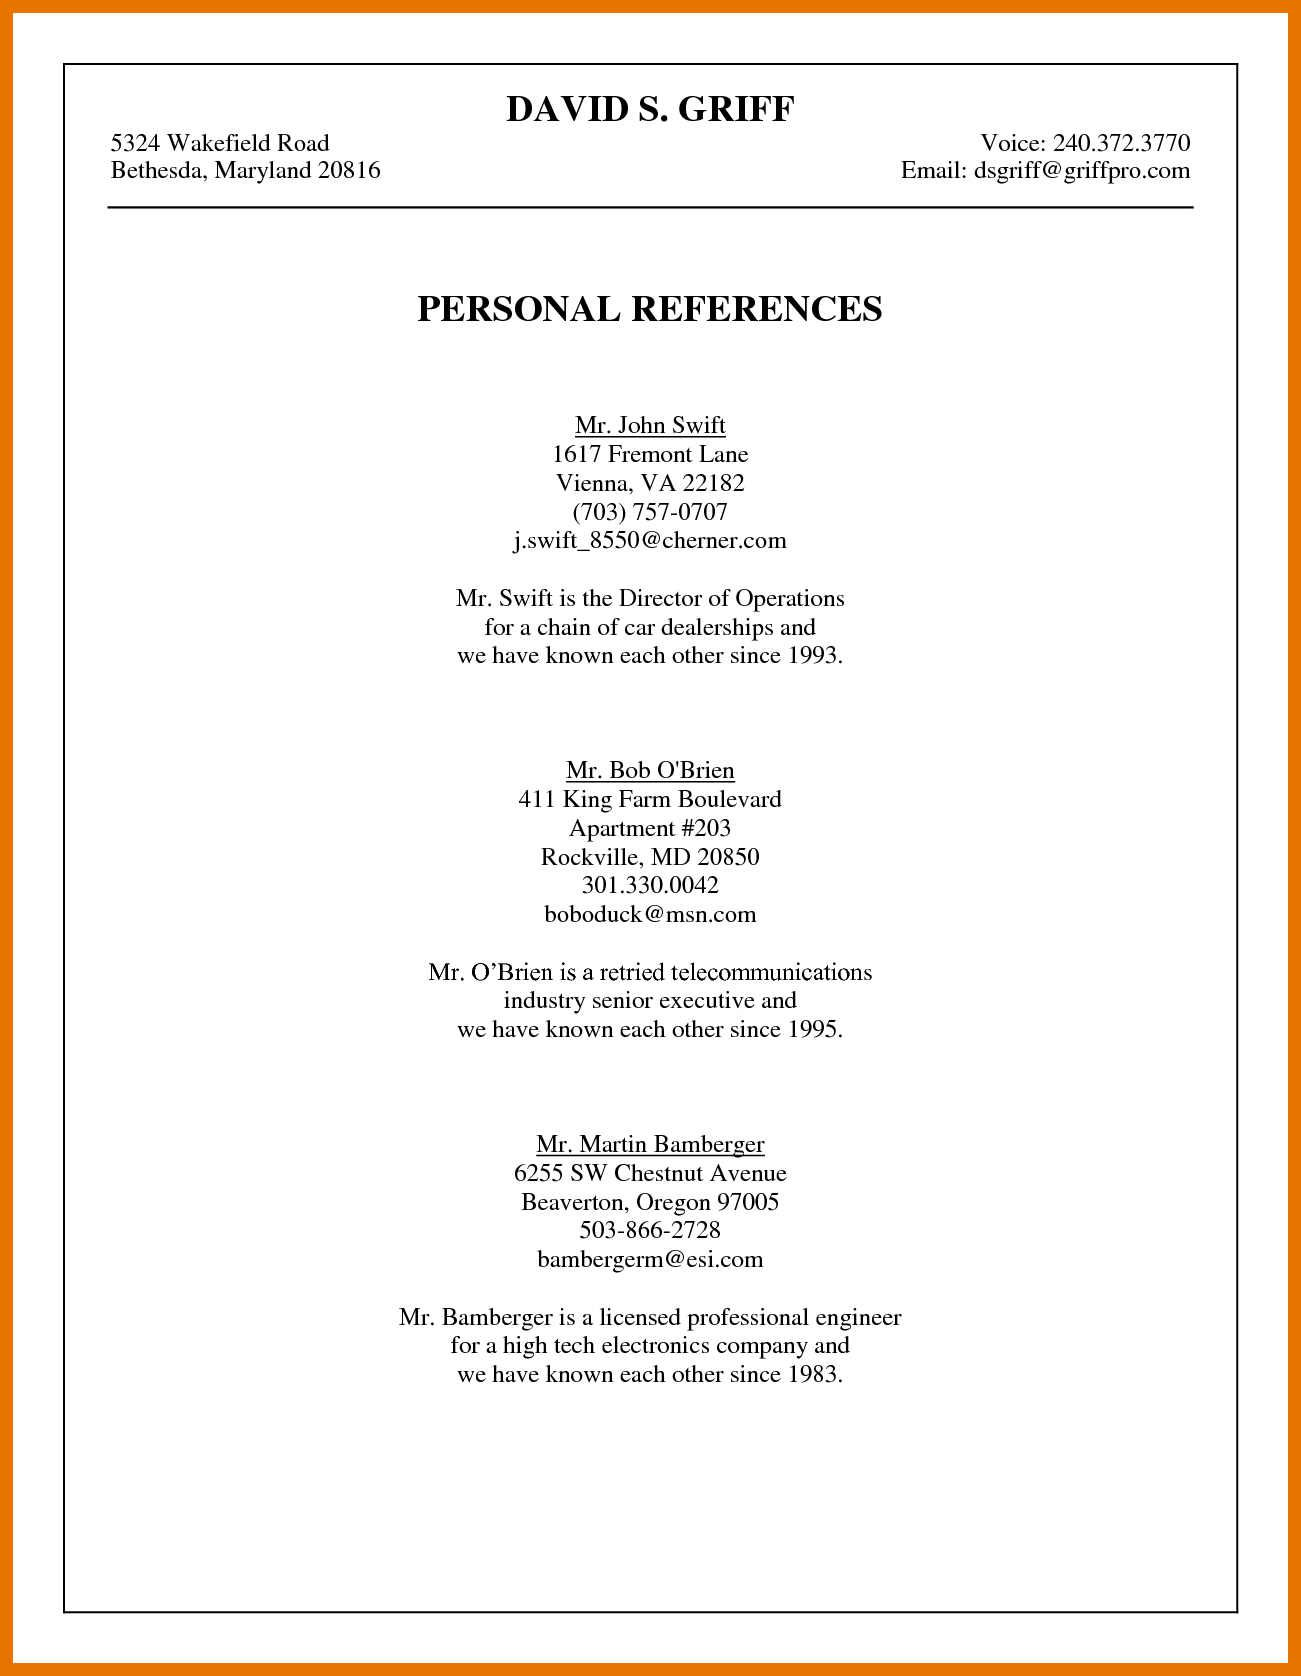 004 Excellent List Of Reference Template High Resolution  Employment Format Professional FreeFull